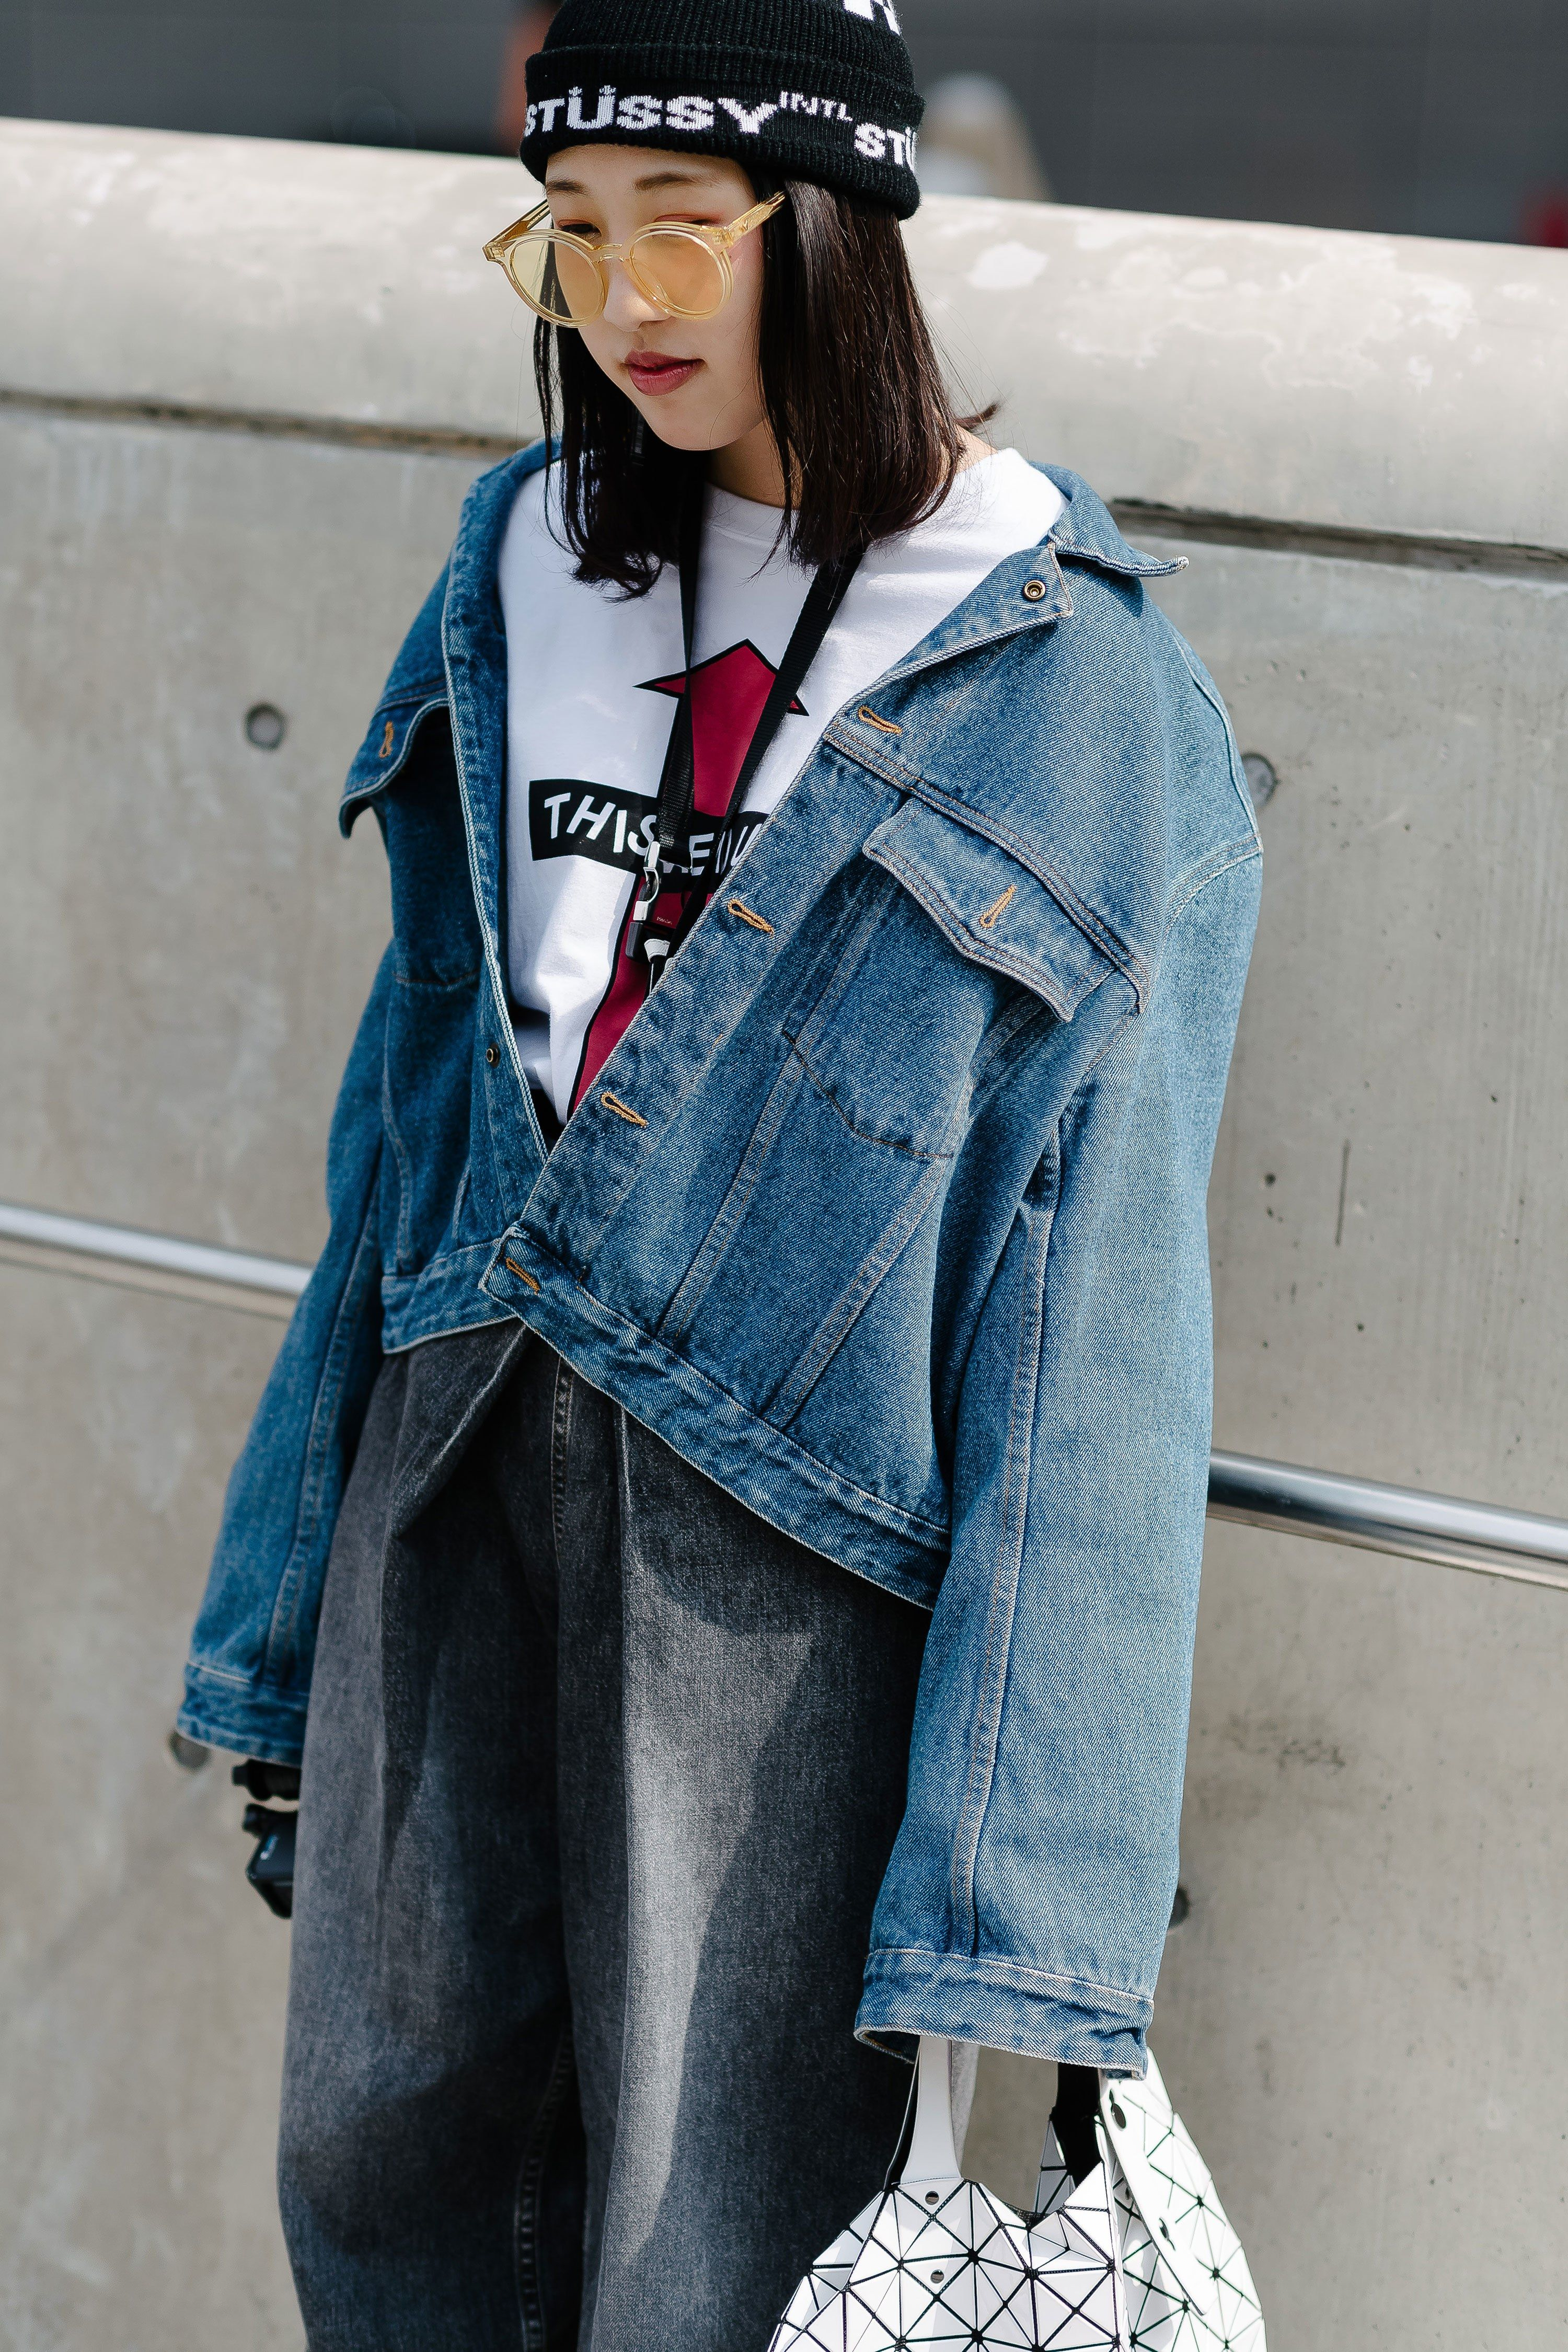 A classic chic, urban look for fall from one of our